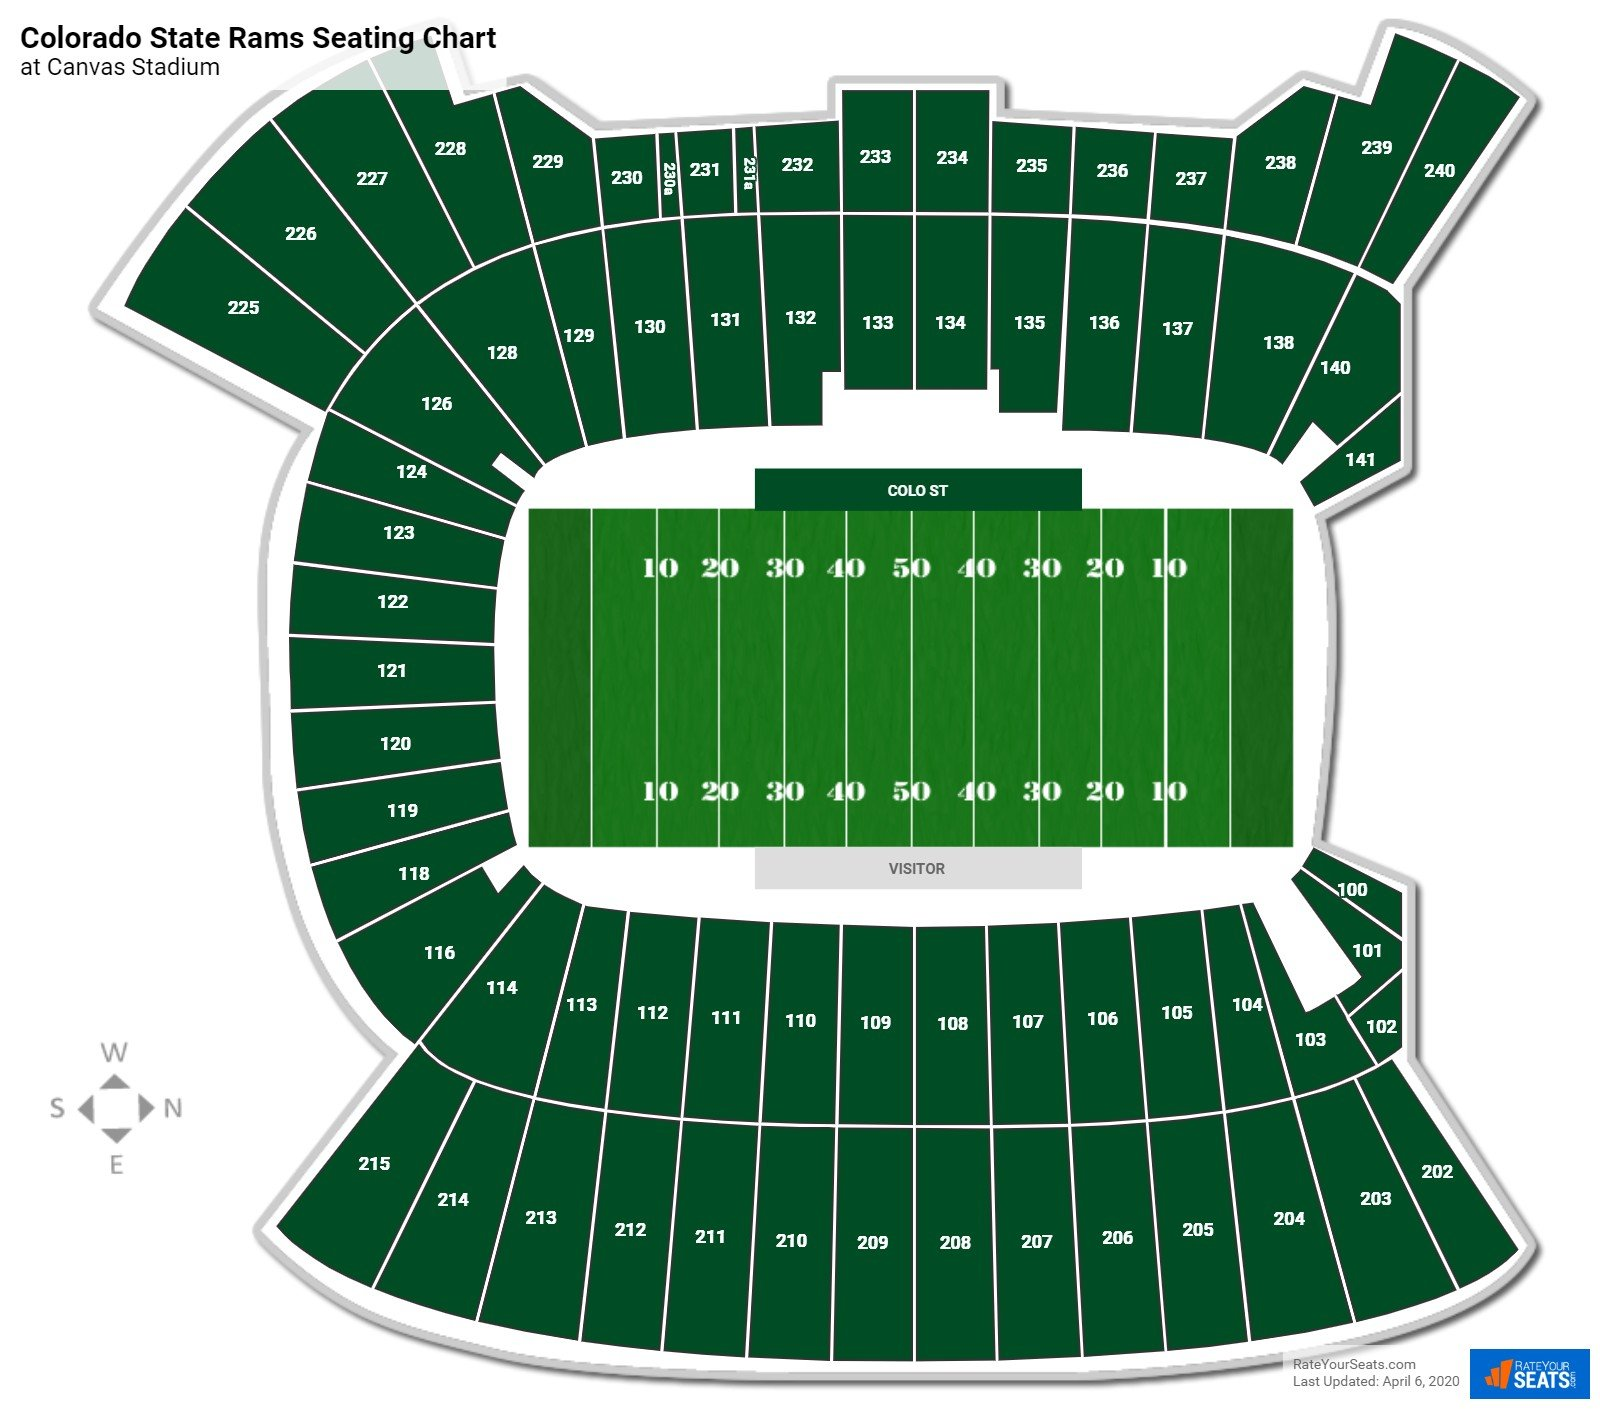 Colorado State Football Seating Chart